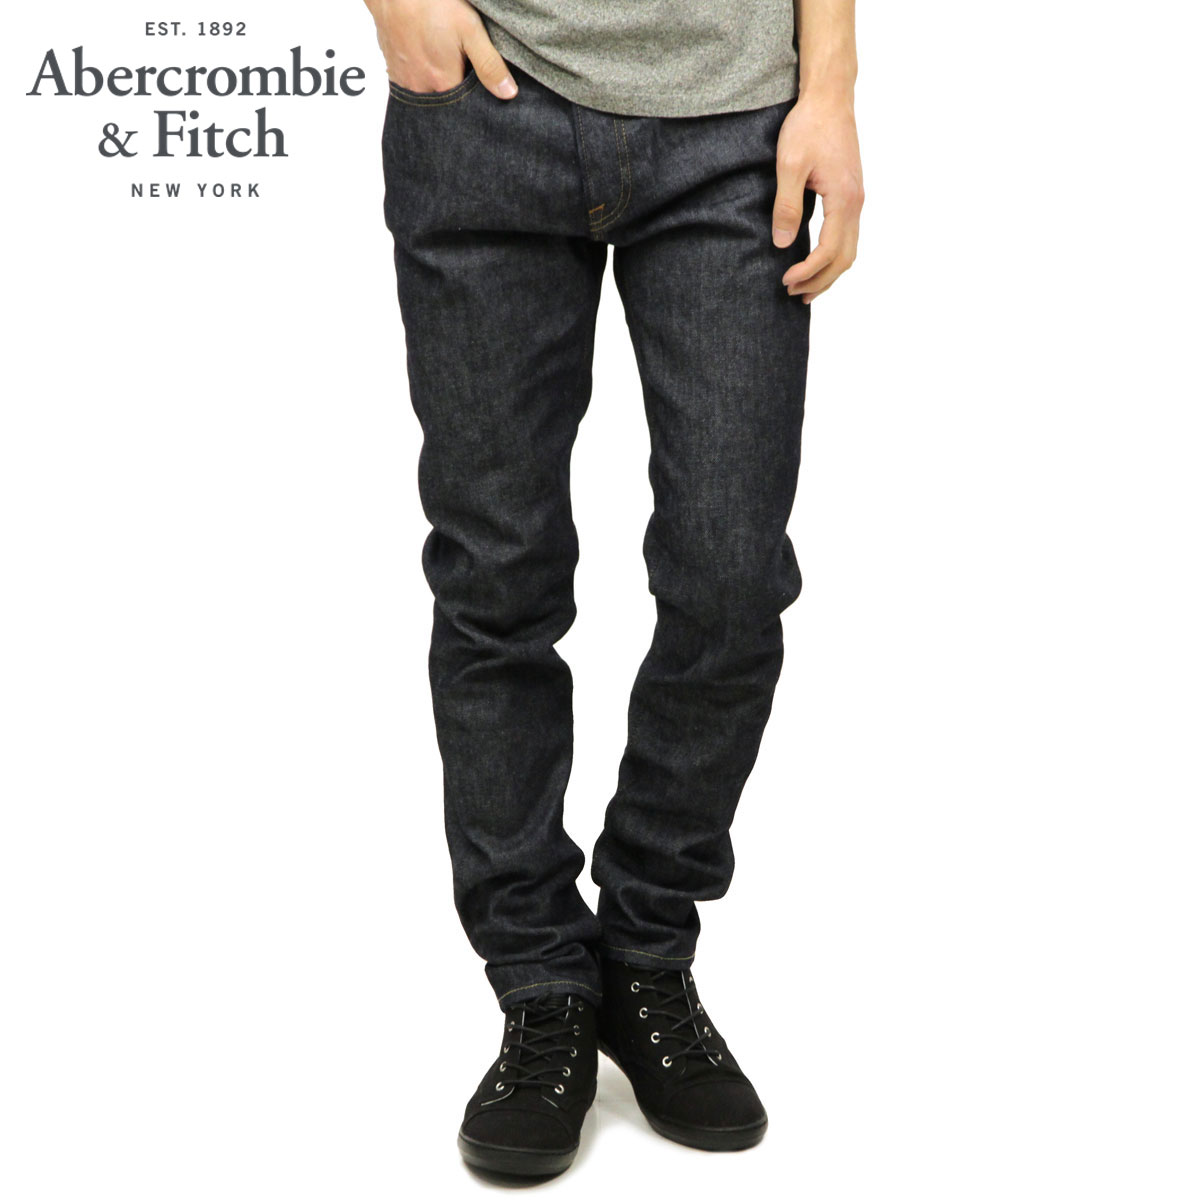 アバクロ Abercrombie&Fitch 正規品 メンズ ジーンズ A&F Taper Zip Fly Winter Jeans 131-318-0855-025 D00S20